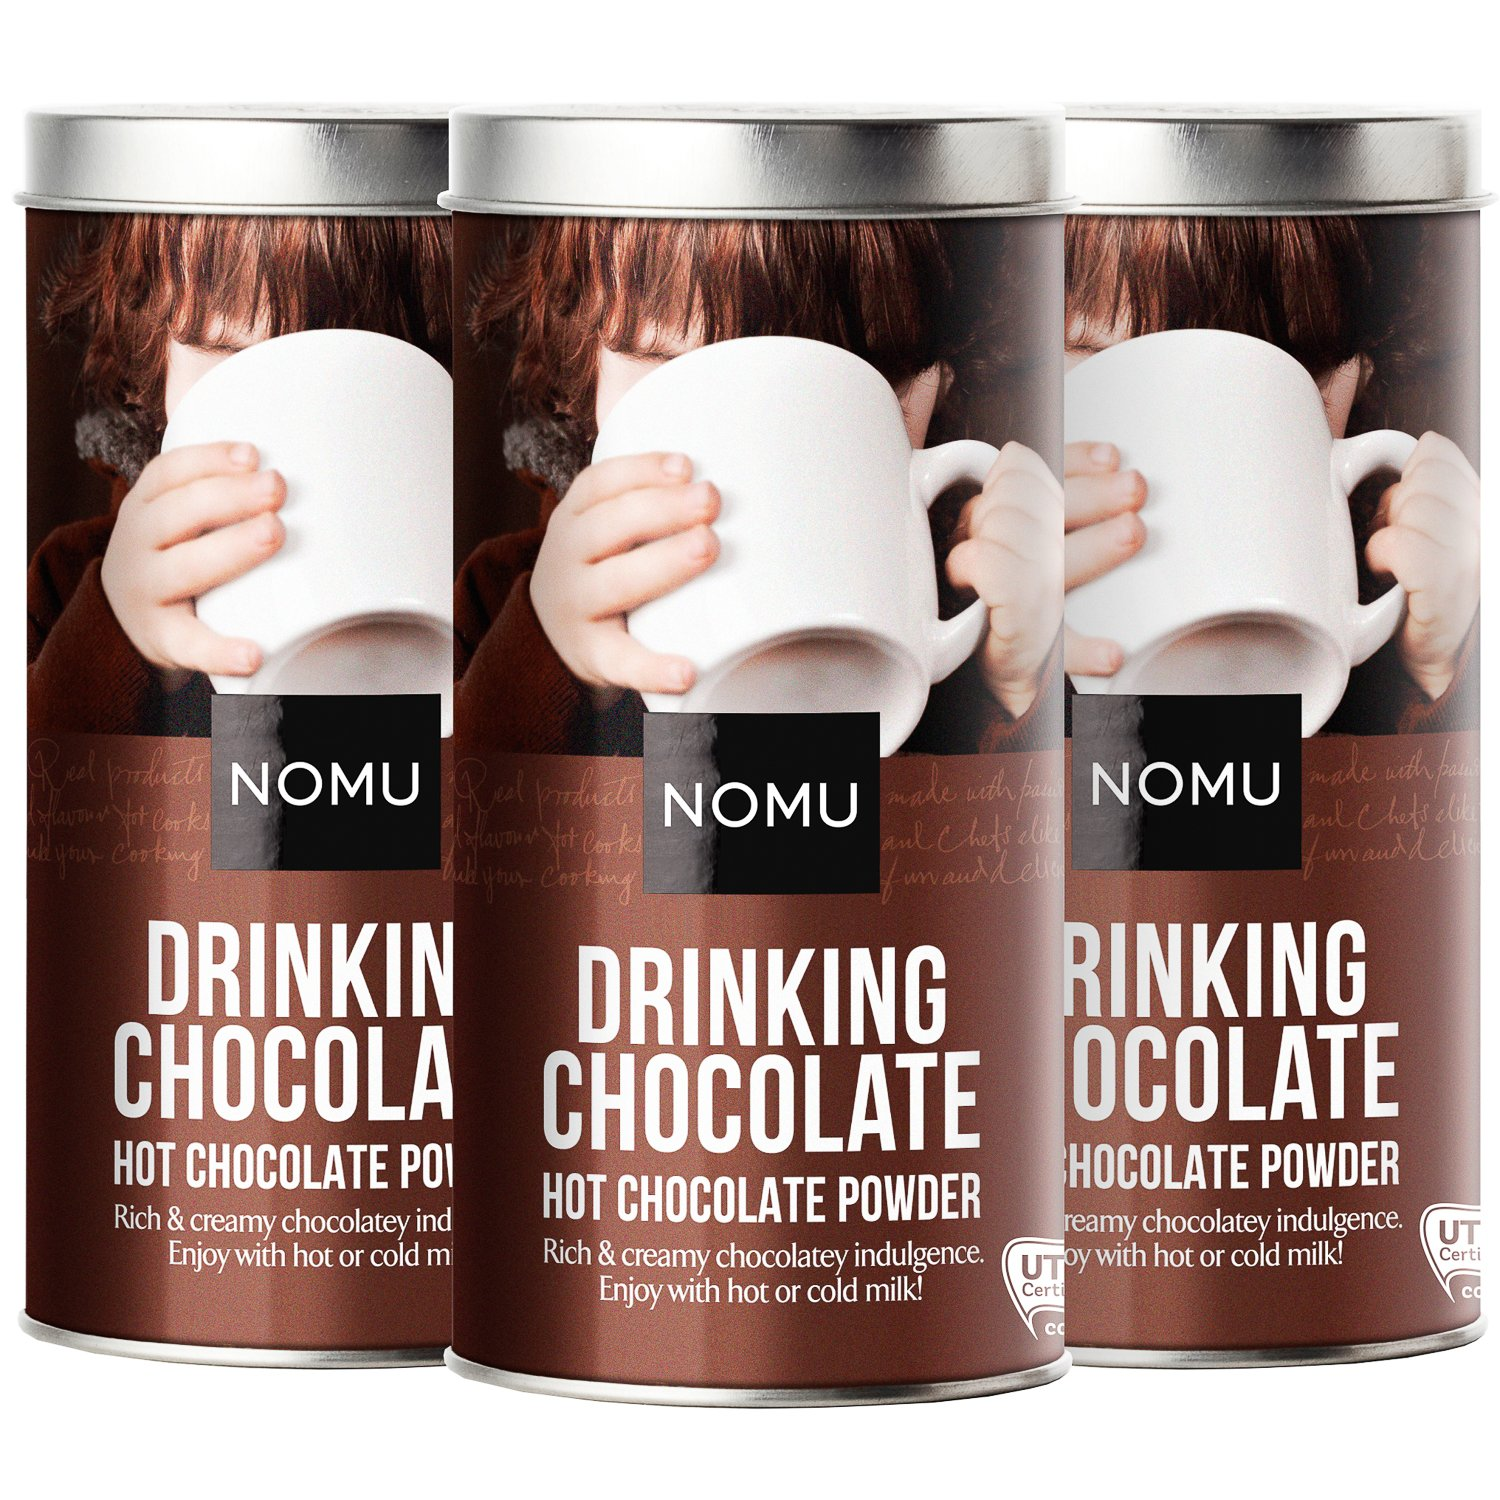 NOMU Drinking Chocolate Powder (3-pack) - Gourmet Cocoa Mix (33 servings)